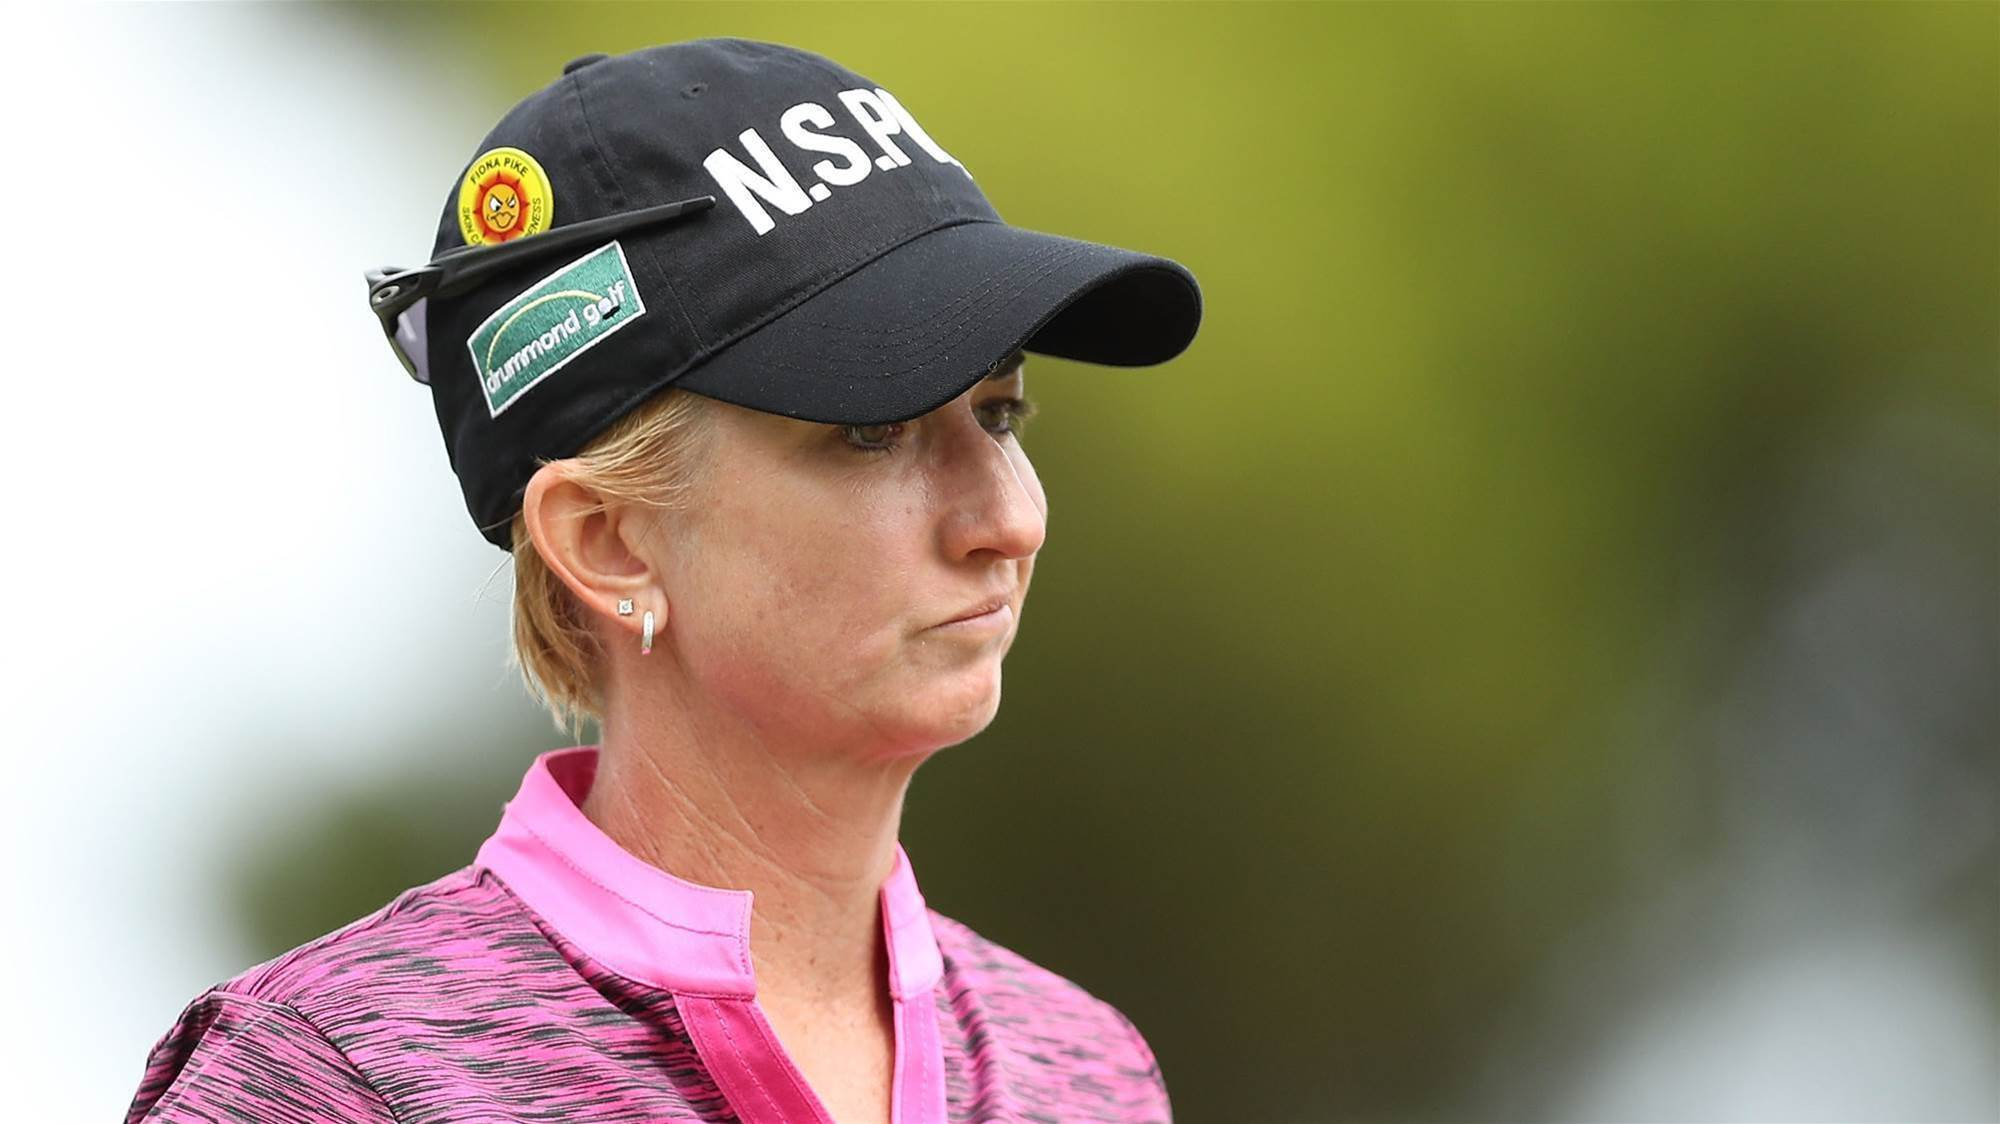 Golf must lose stuffy traditions: Webb